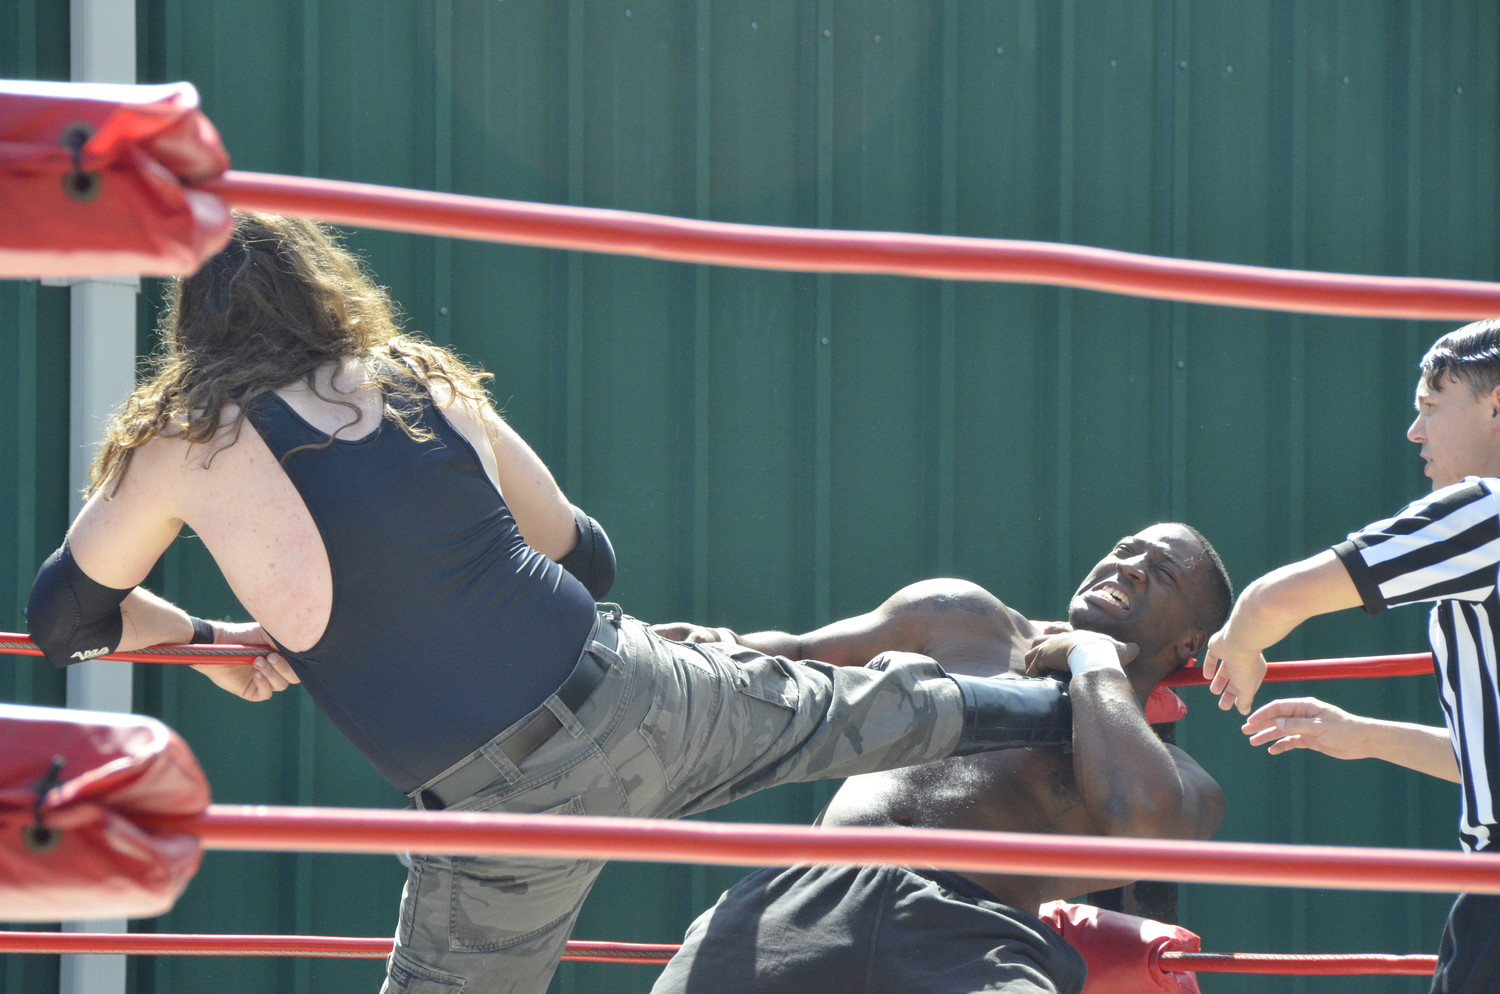 Travis 'Mason Jar' Dixon lays the leather to Gem Stone in the opening match of Saturday's Ring Wars Carolina event at Fit 4 Life gym in Dunn. Stone won via disqualification, then later wrestler Dixon again in Dunn Street Fight match with his partner Flex Simmons. Kris Nemesis was also in that match, but Stone and Simmons were victorious.